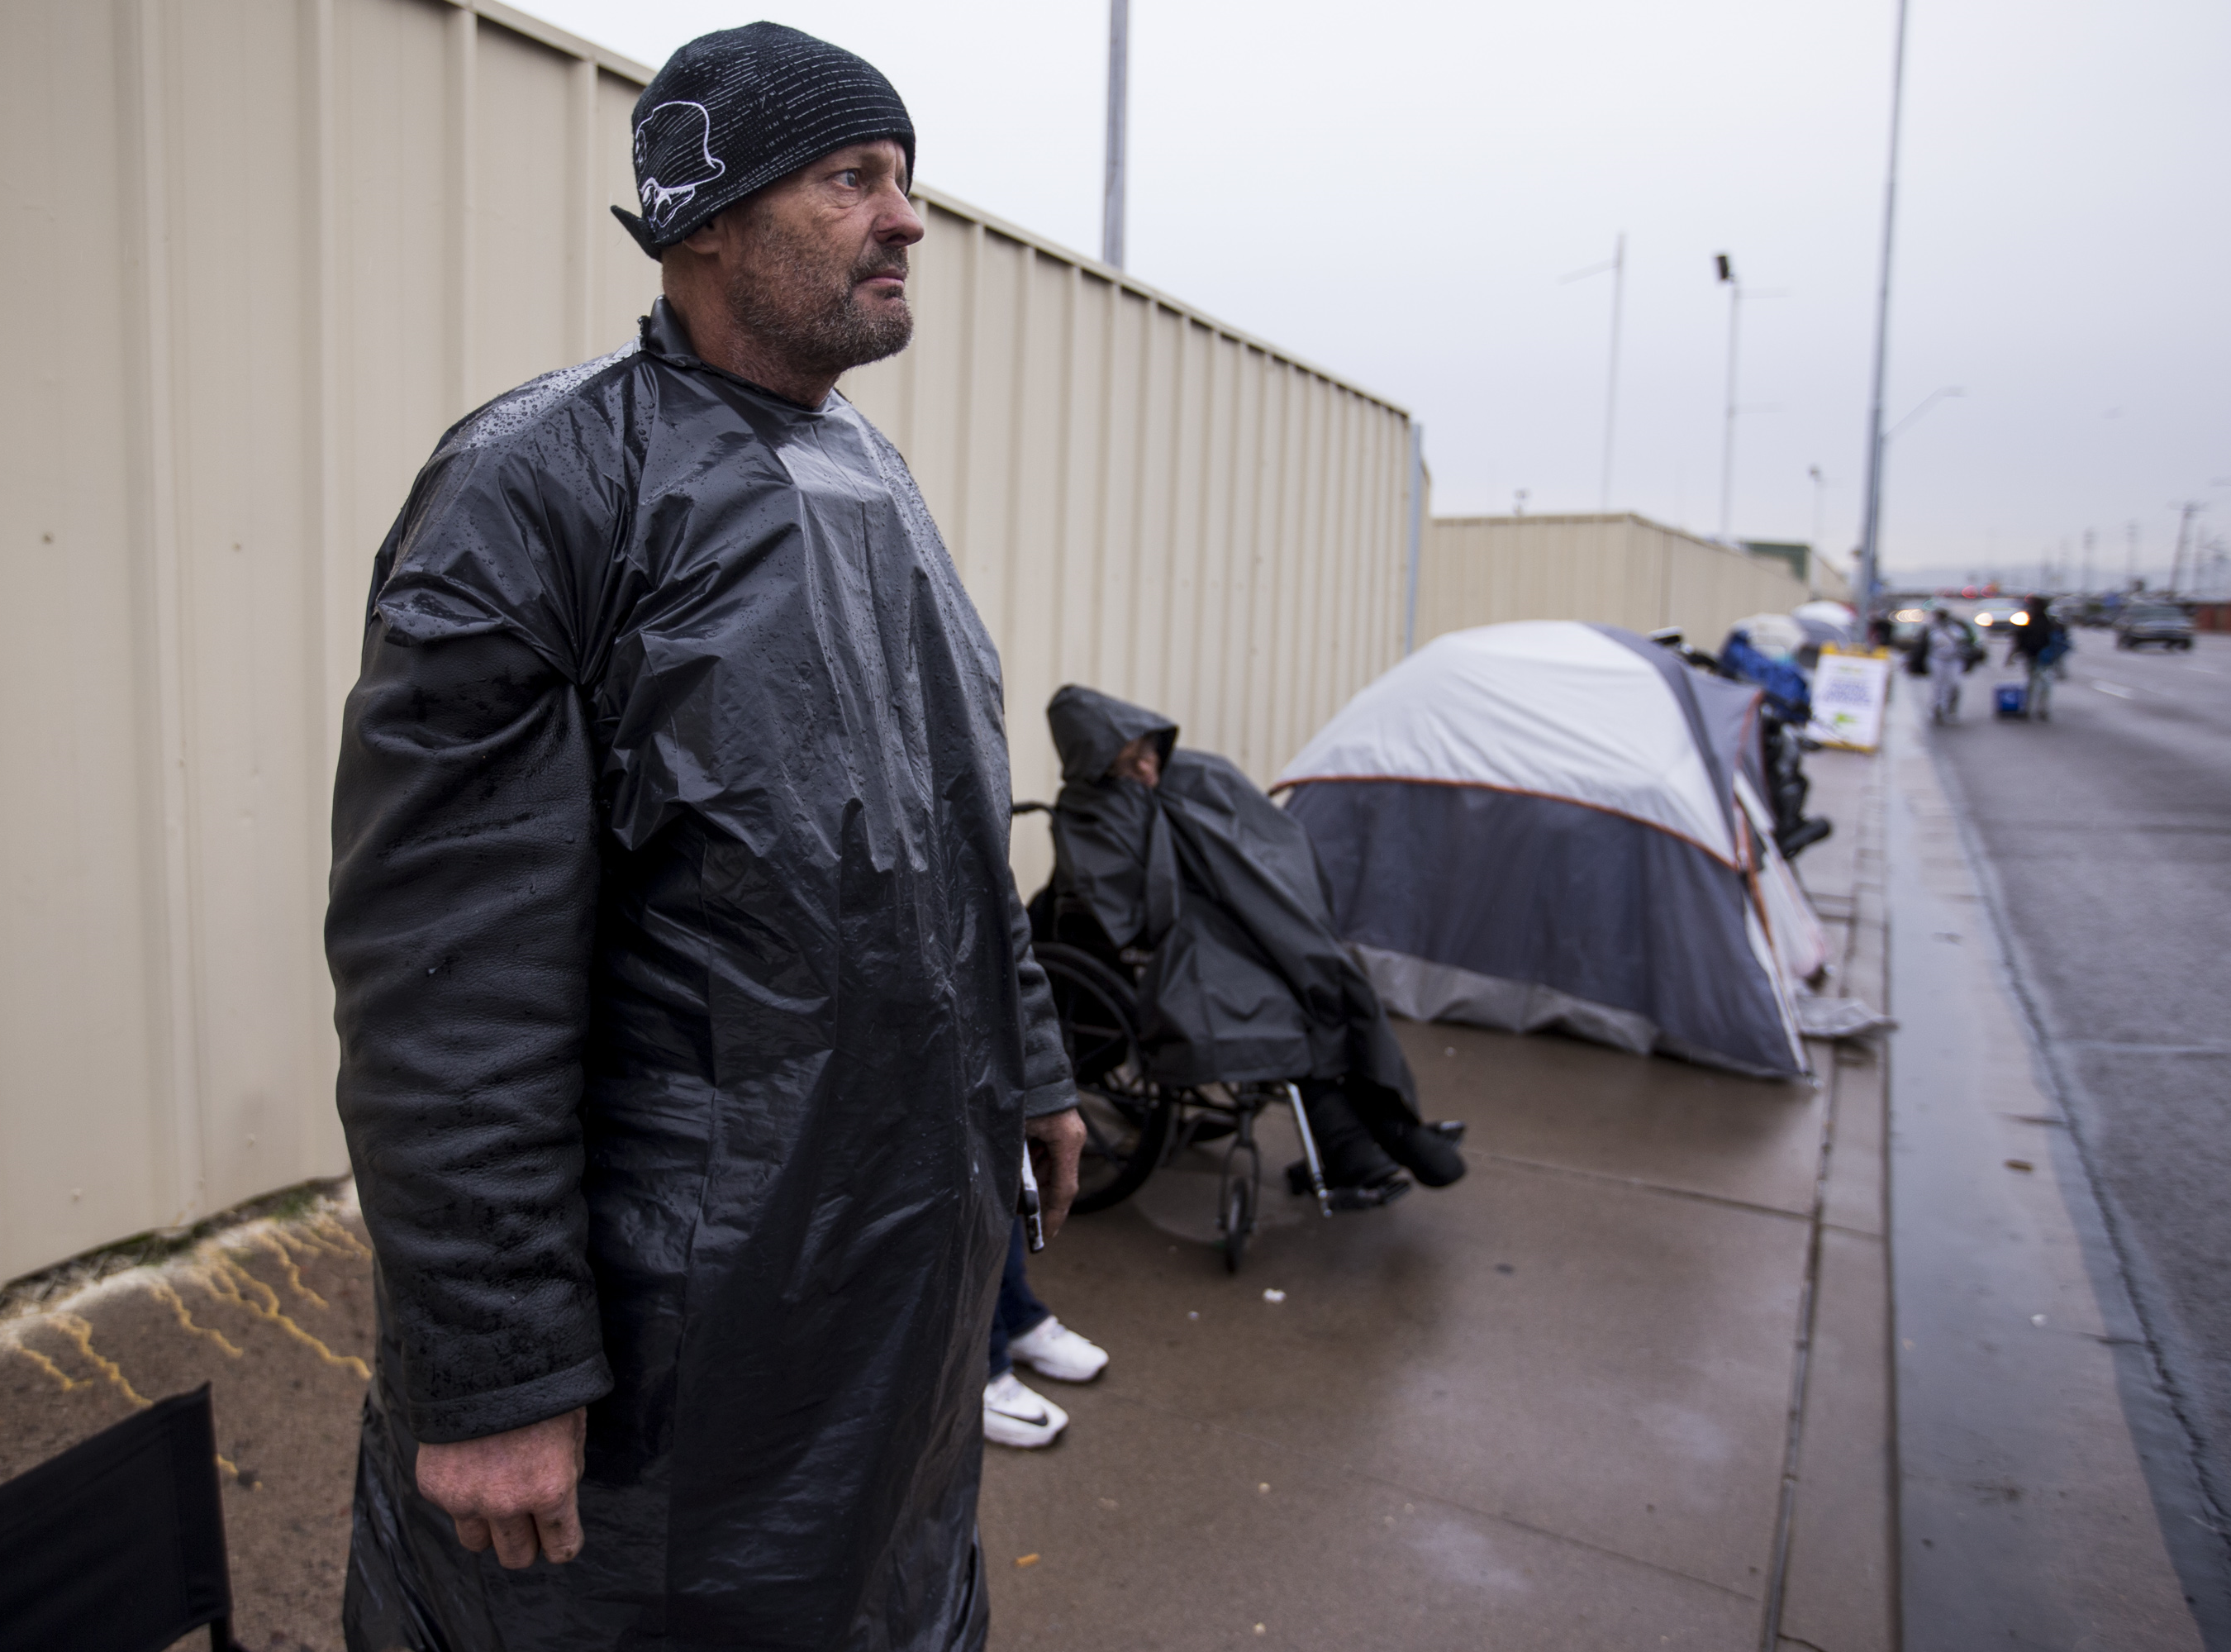 John Quick, 51, waits in line to get free dental work on Dec. 5, 2018, in Phoenix.